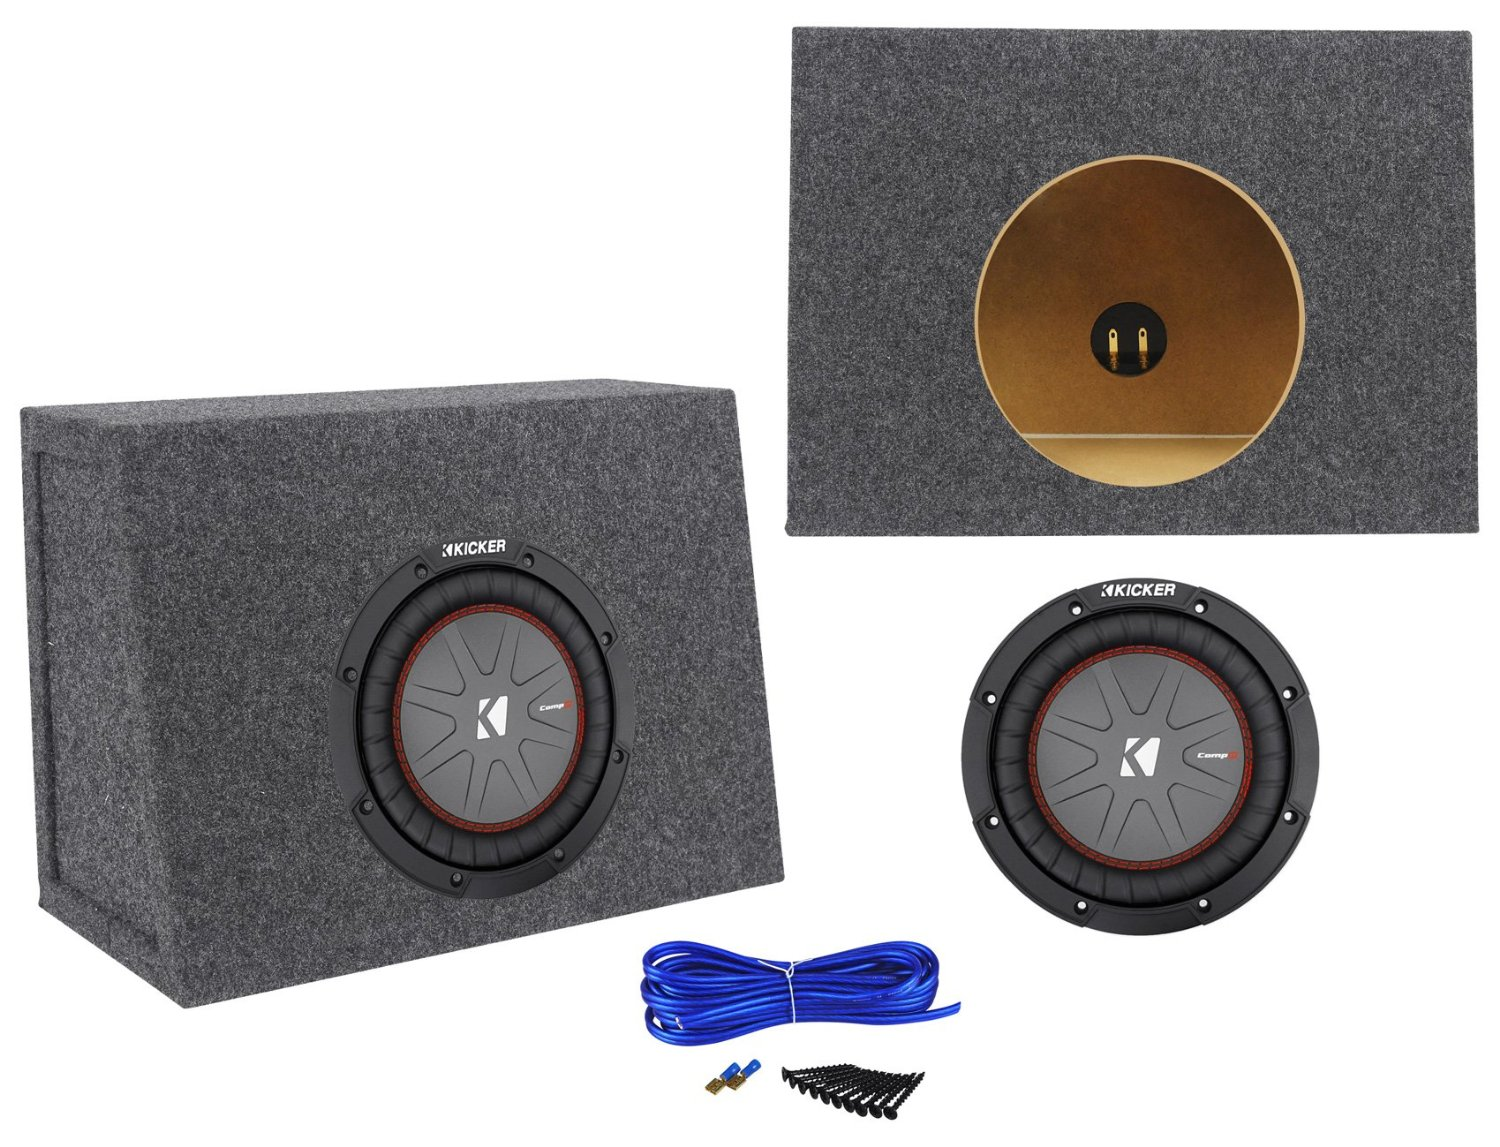 "Package: Kicker 43CWR82 8"" 600W Dual Voice Coil 2-Ohm Car Audio Sub+Single 8"" 0.44 Cu. Ft. 3/4"" MDF Shallow Sub Enclosure Box+Single Enclosure Wire Kit W/14 Gauge Speaker Wire+Screws+Spade Terminals"